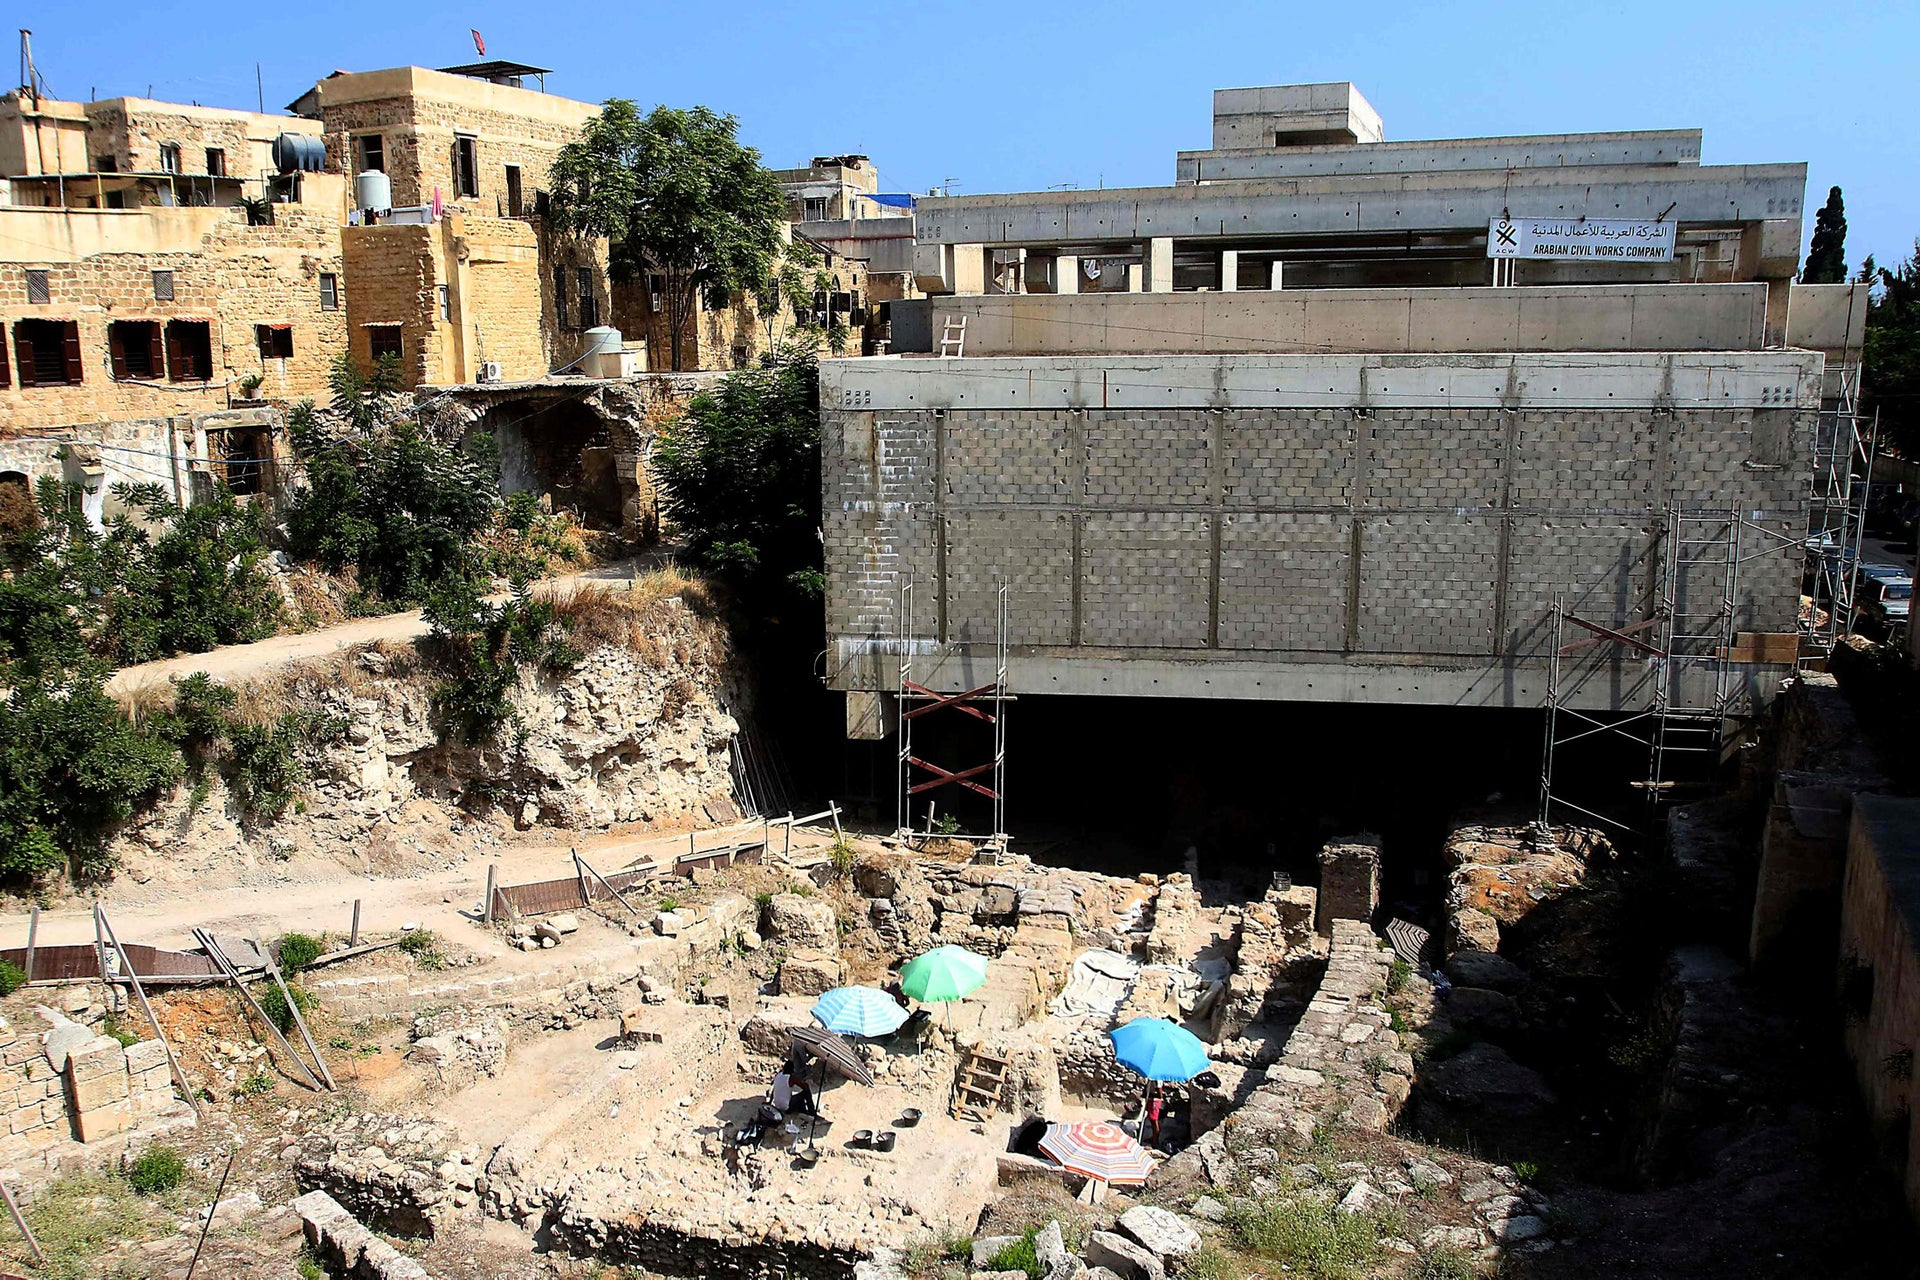 Archaeology in the Middle East: The Sidon dig is taking place in the middle of the modern town.